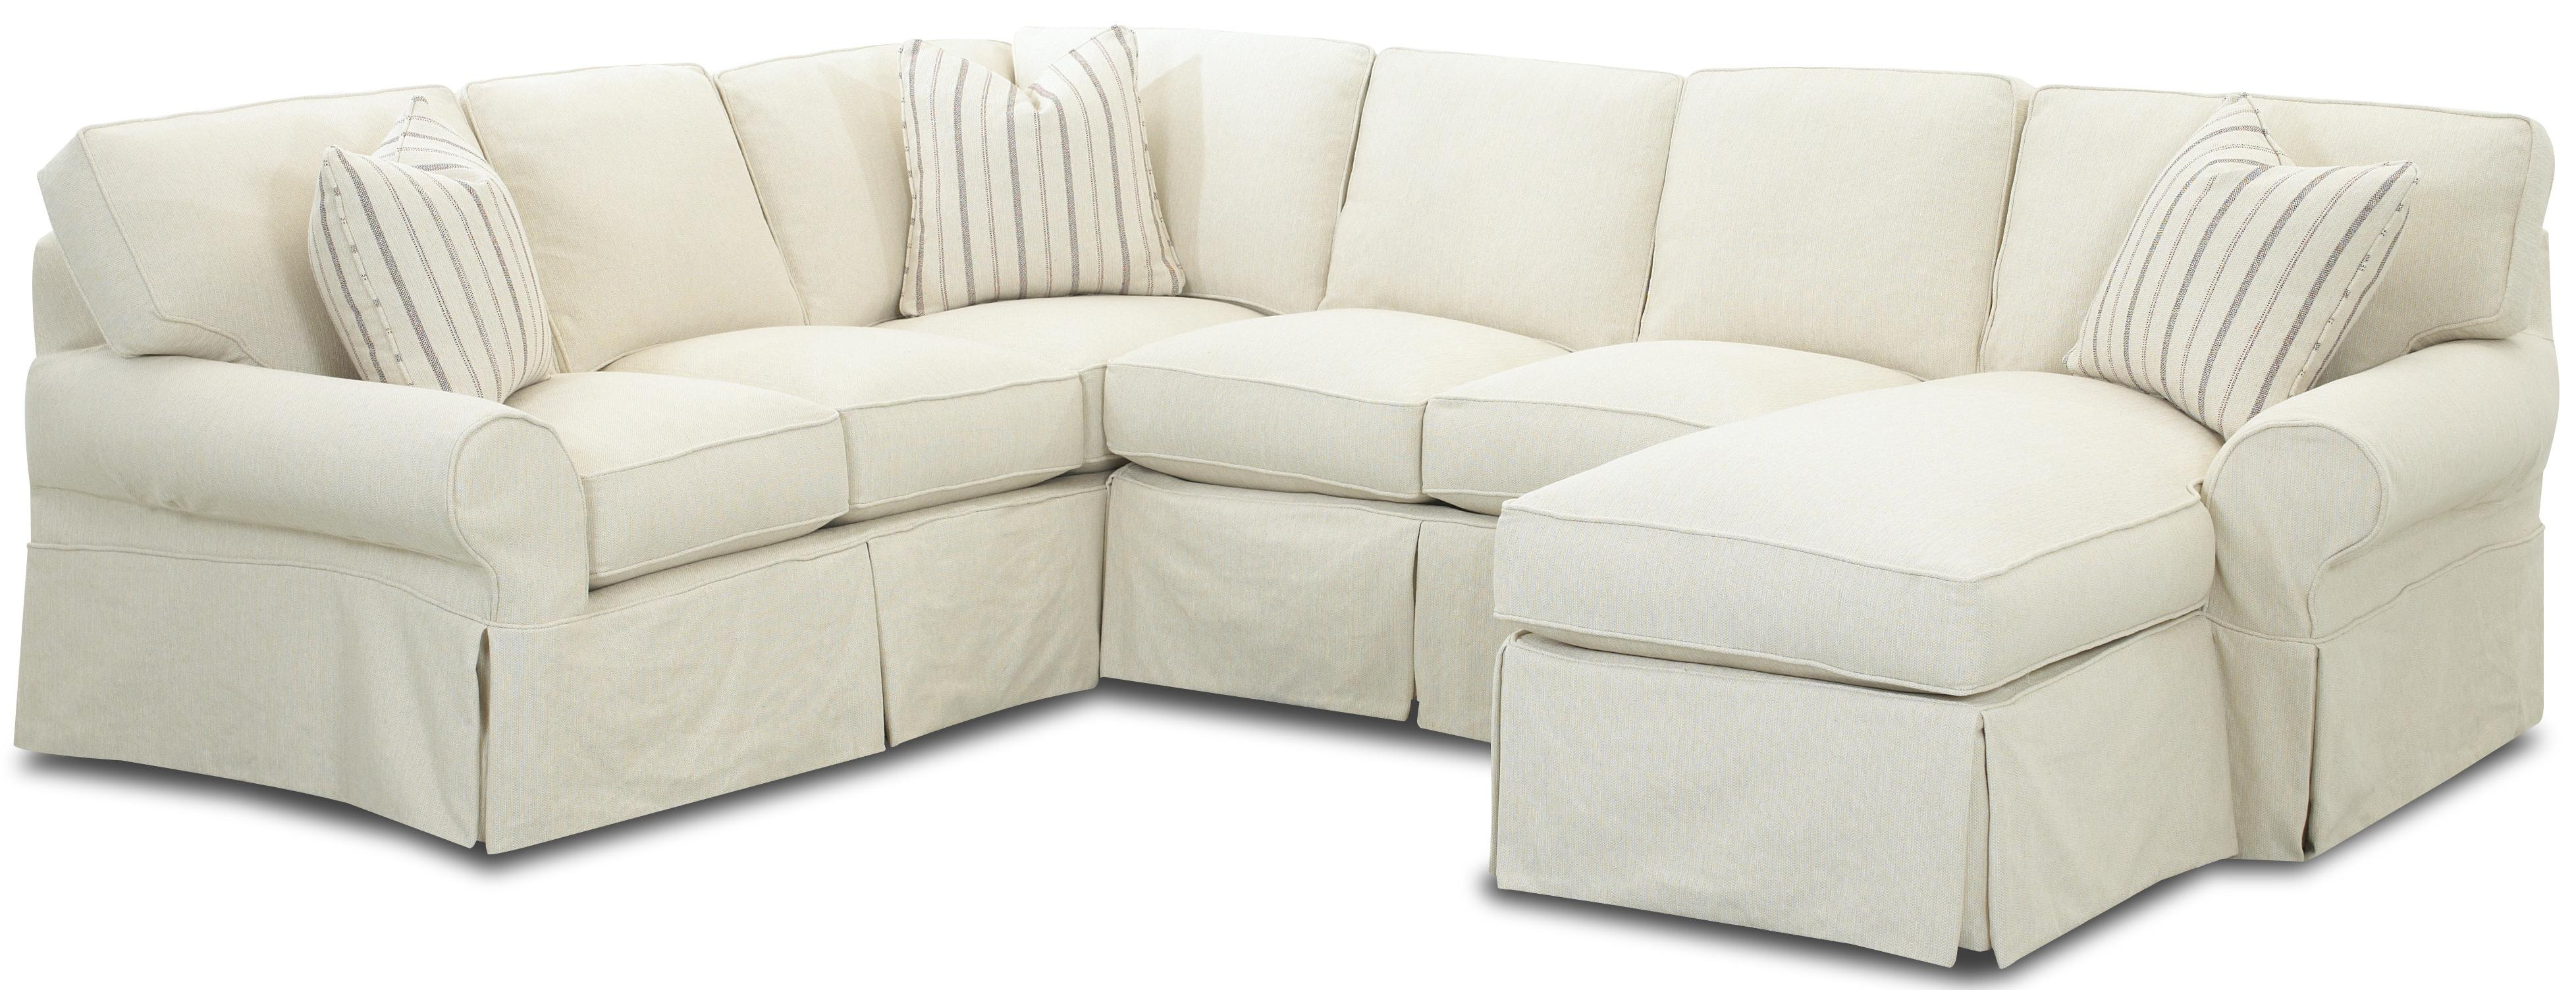 Slipcover Sectional Sofa With Chaise Slipcovers For